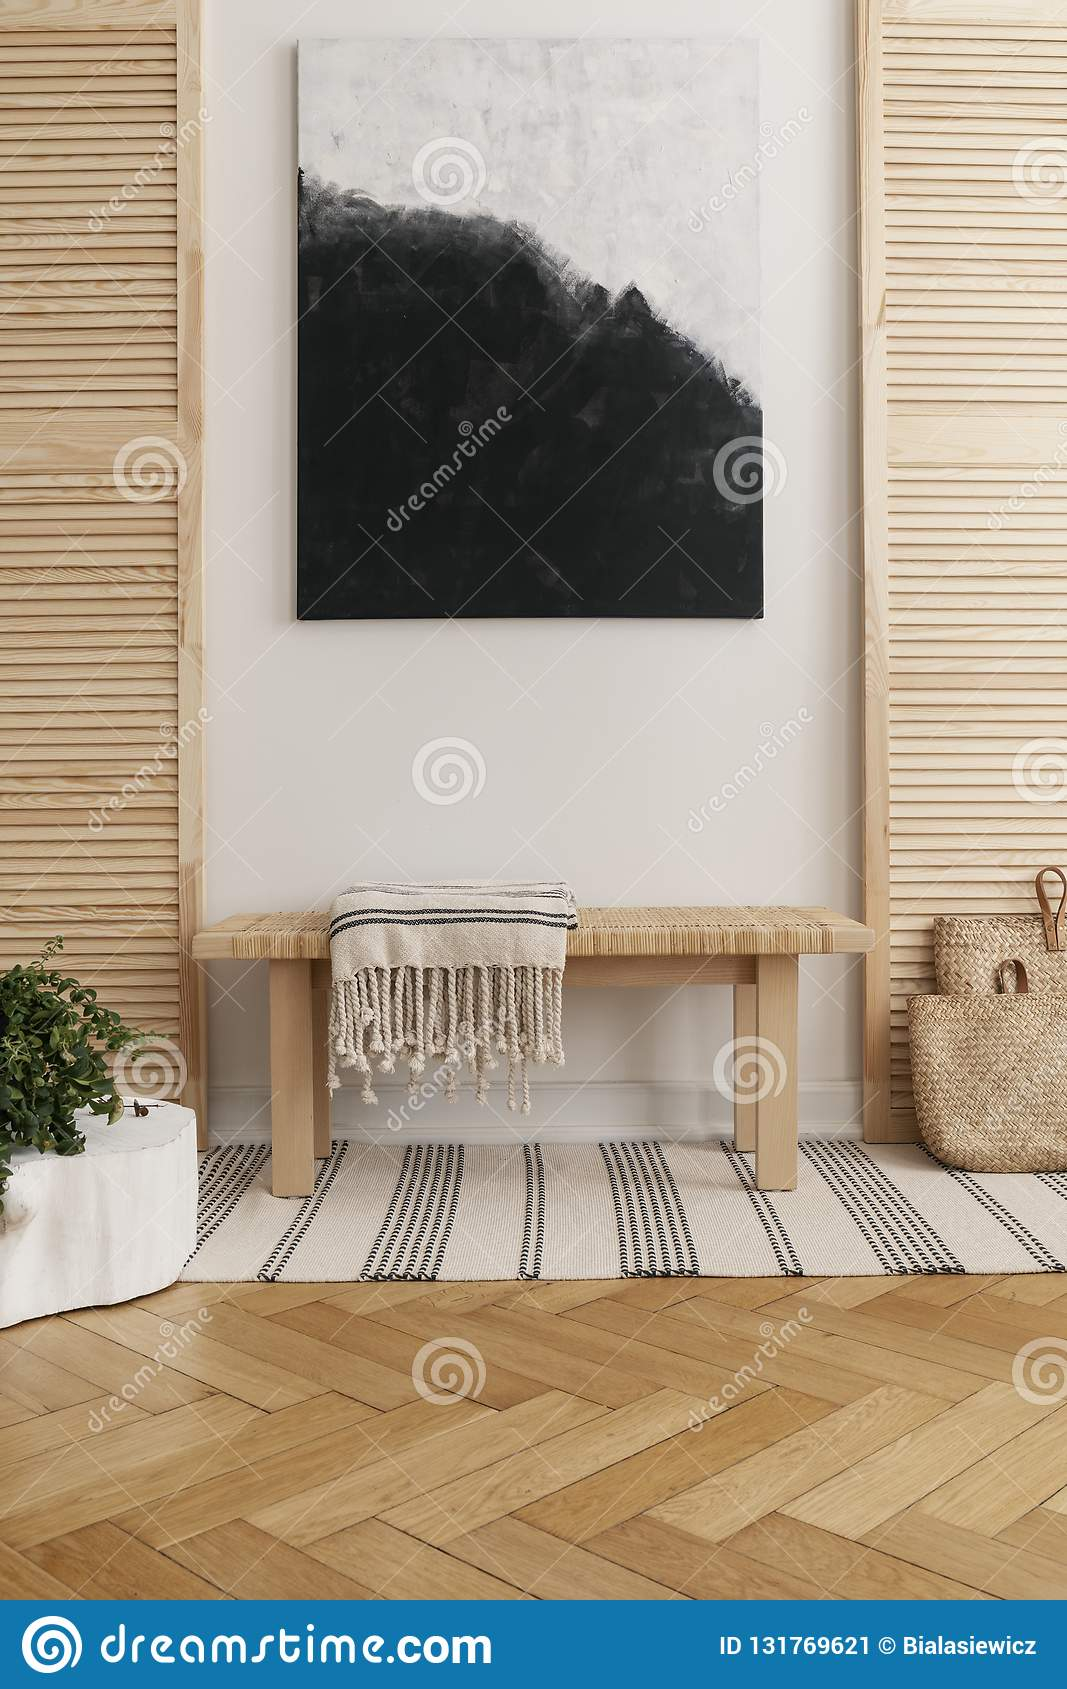 Black and white abstract painting above wooden table in natural designed interior